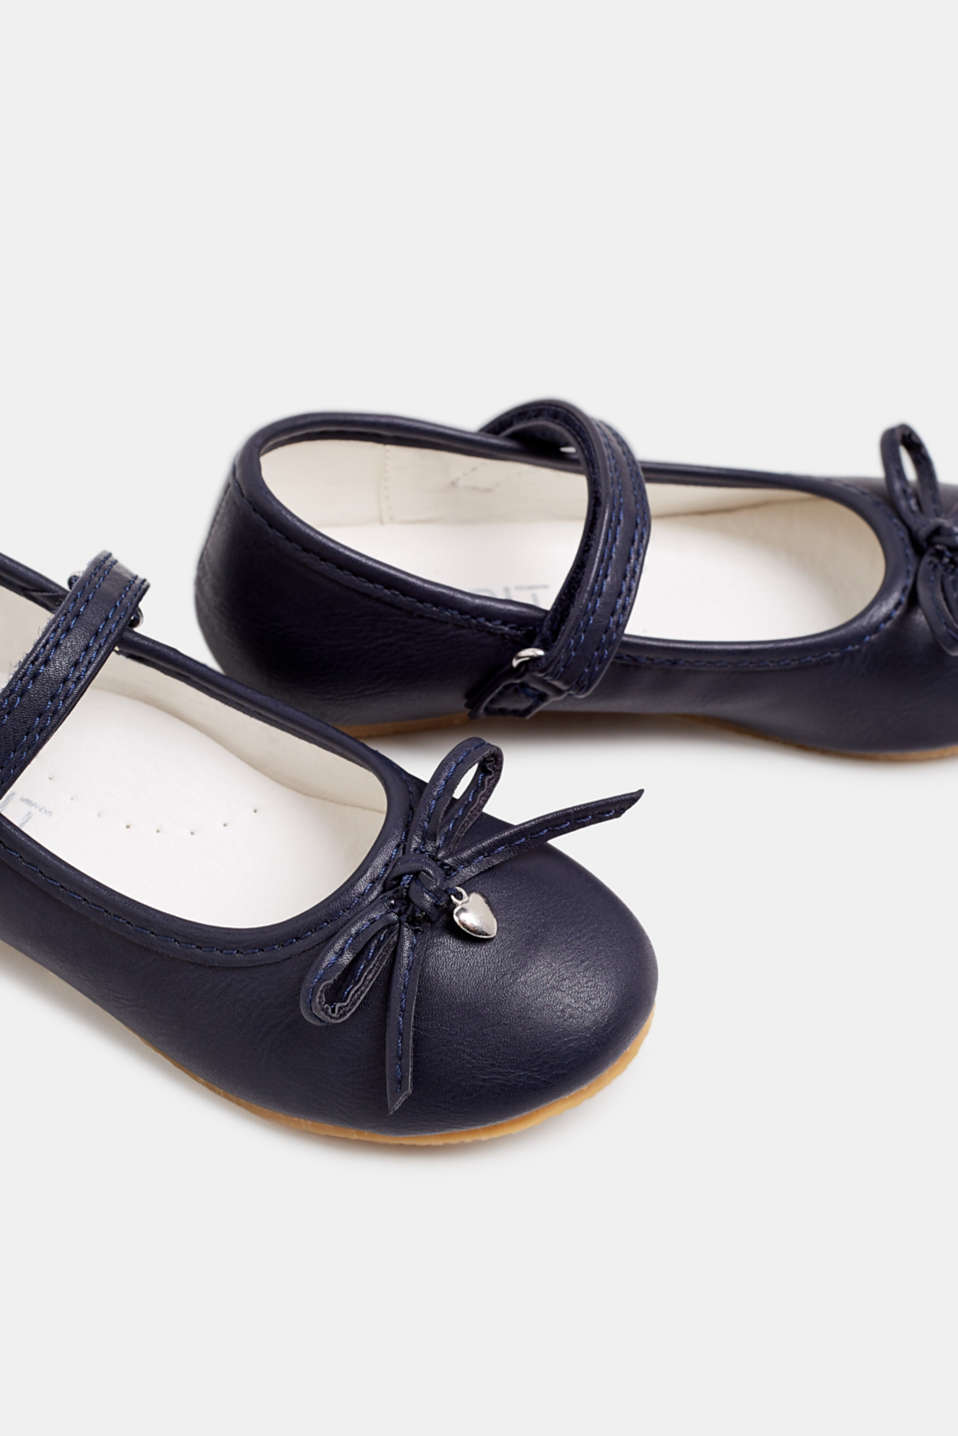 Ballerinas with Velcro straps, in faux leather, NAVY, detail image number 3